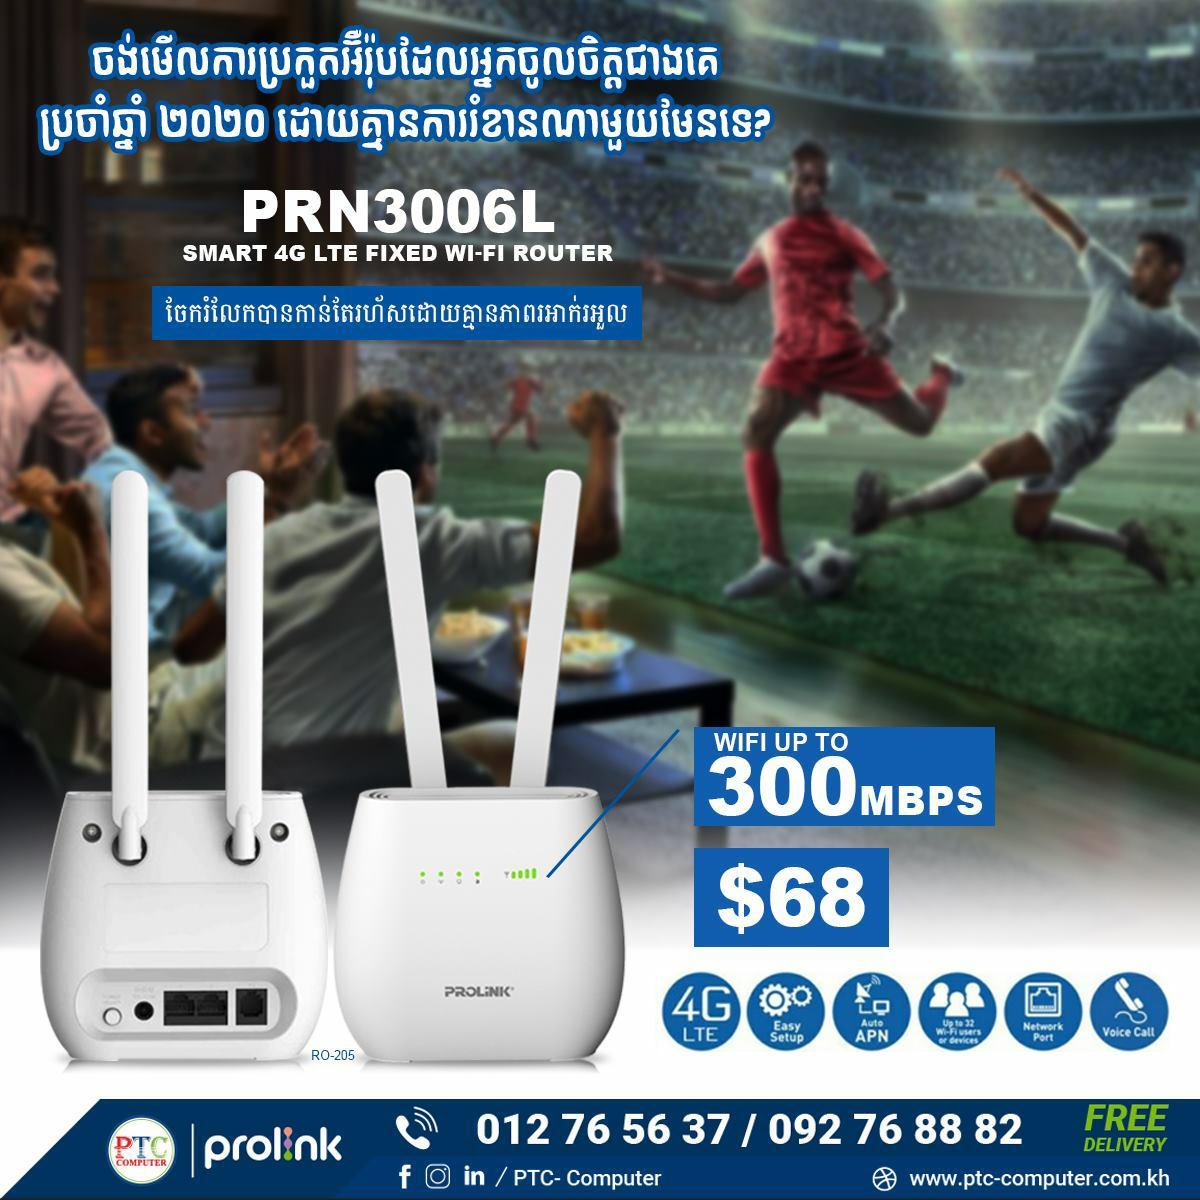 Smart 4G LTE Fixed Wi-Fi Router with Voice!